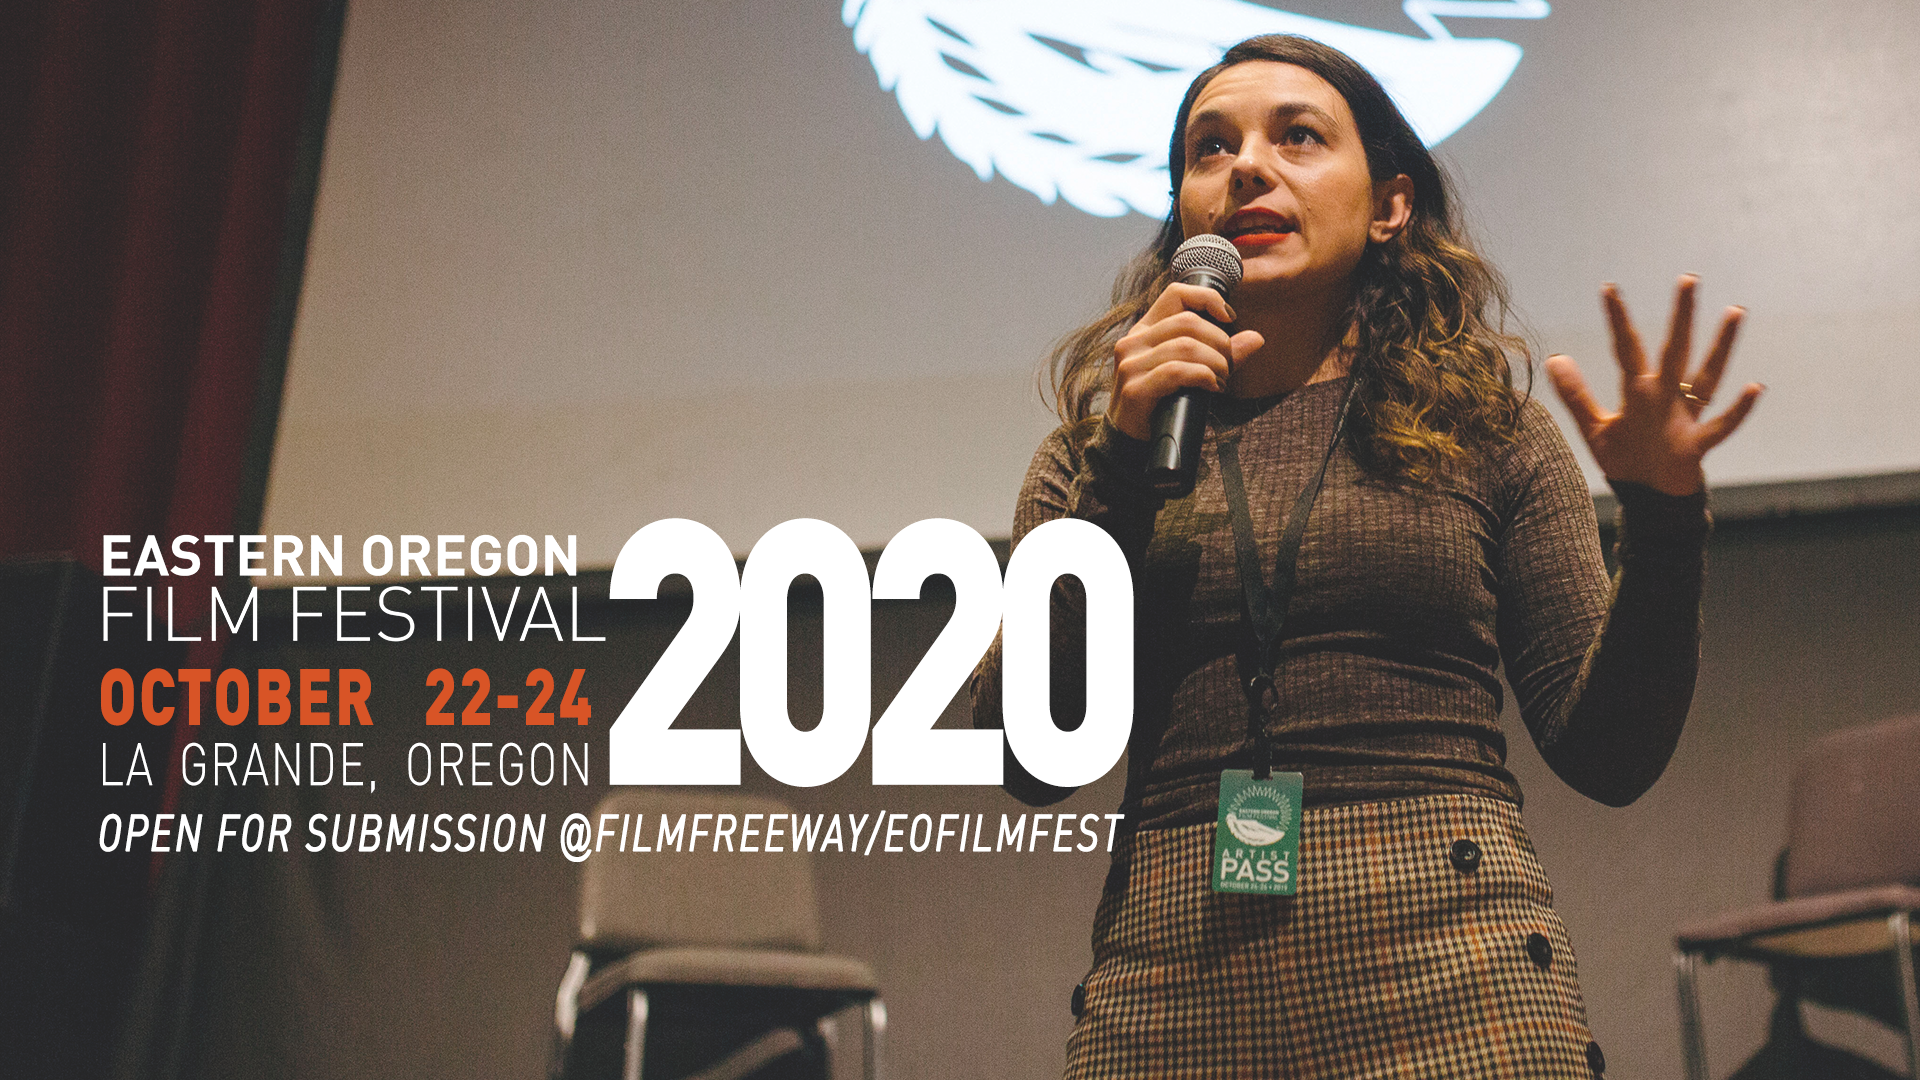 #EOFF2020 / October 22-24, 2020 / La Grande, Oregon